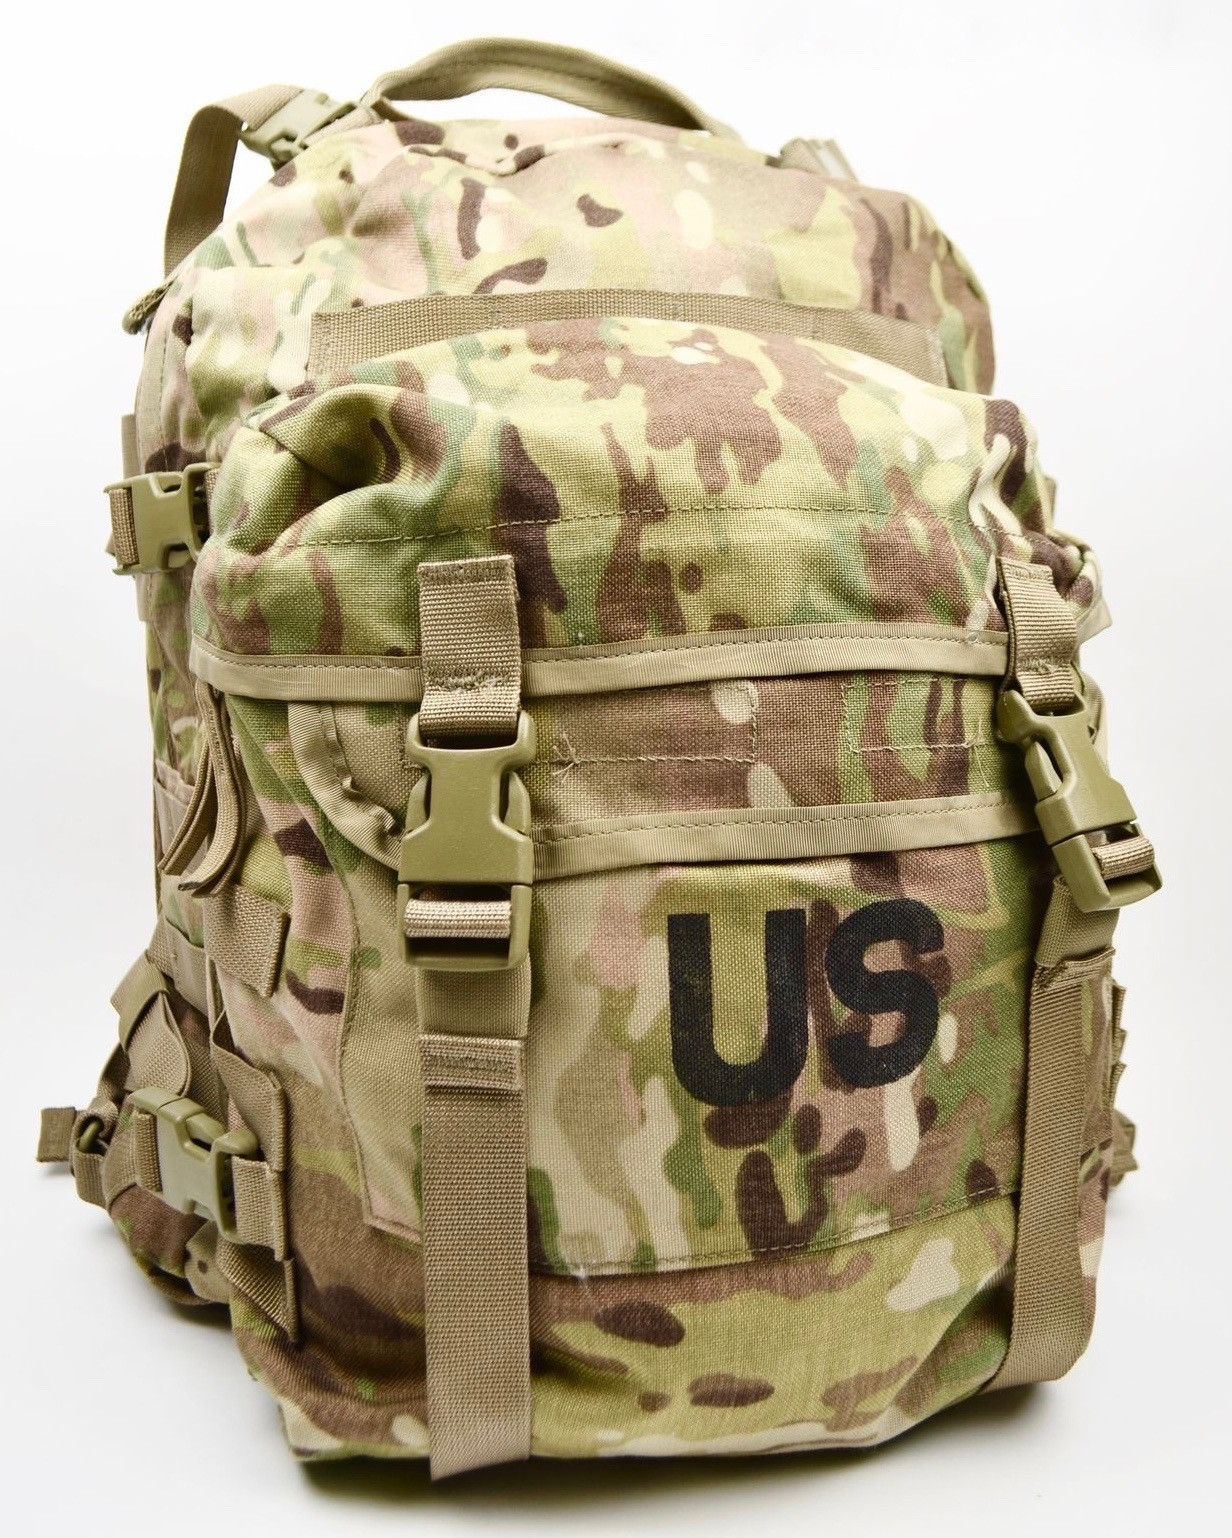 af6781d12c4a USGI ARMY MULTICAM OCP ASSAULT PACK 3 DAY BACKPACK - Orbital Tactical